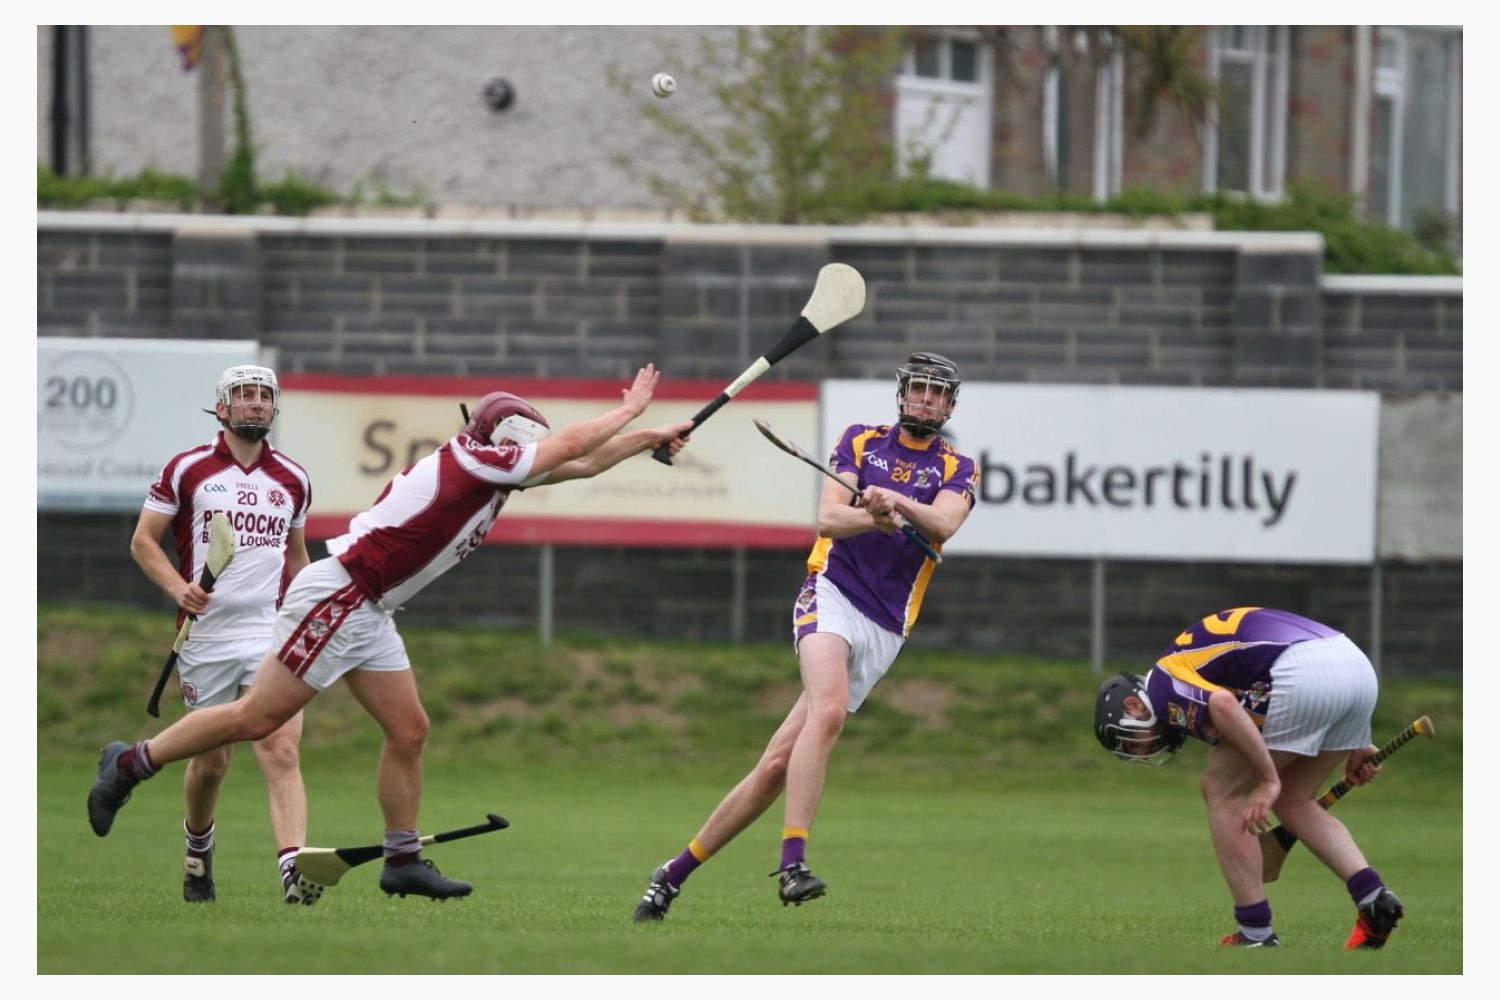 Junior B Hurlers through to Quarter Finals with win over St Finians